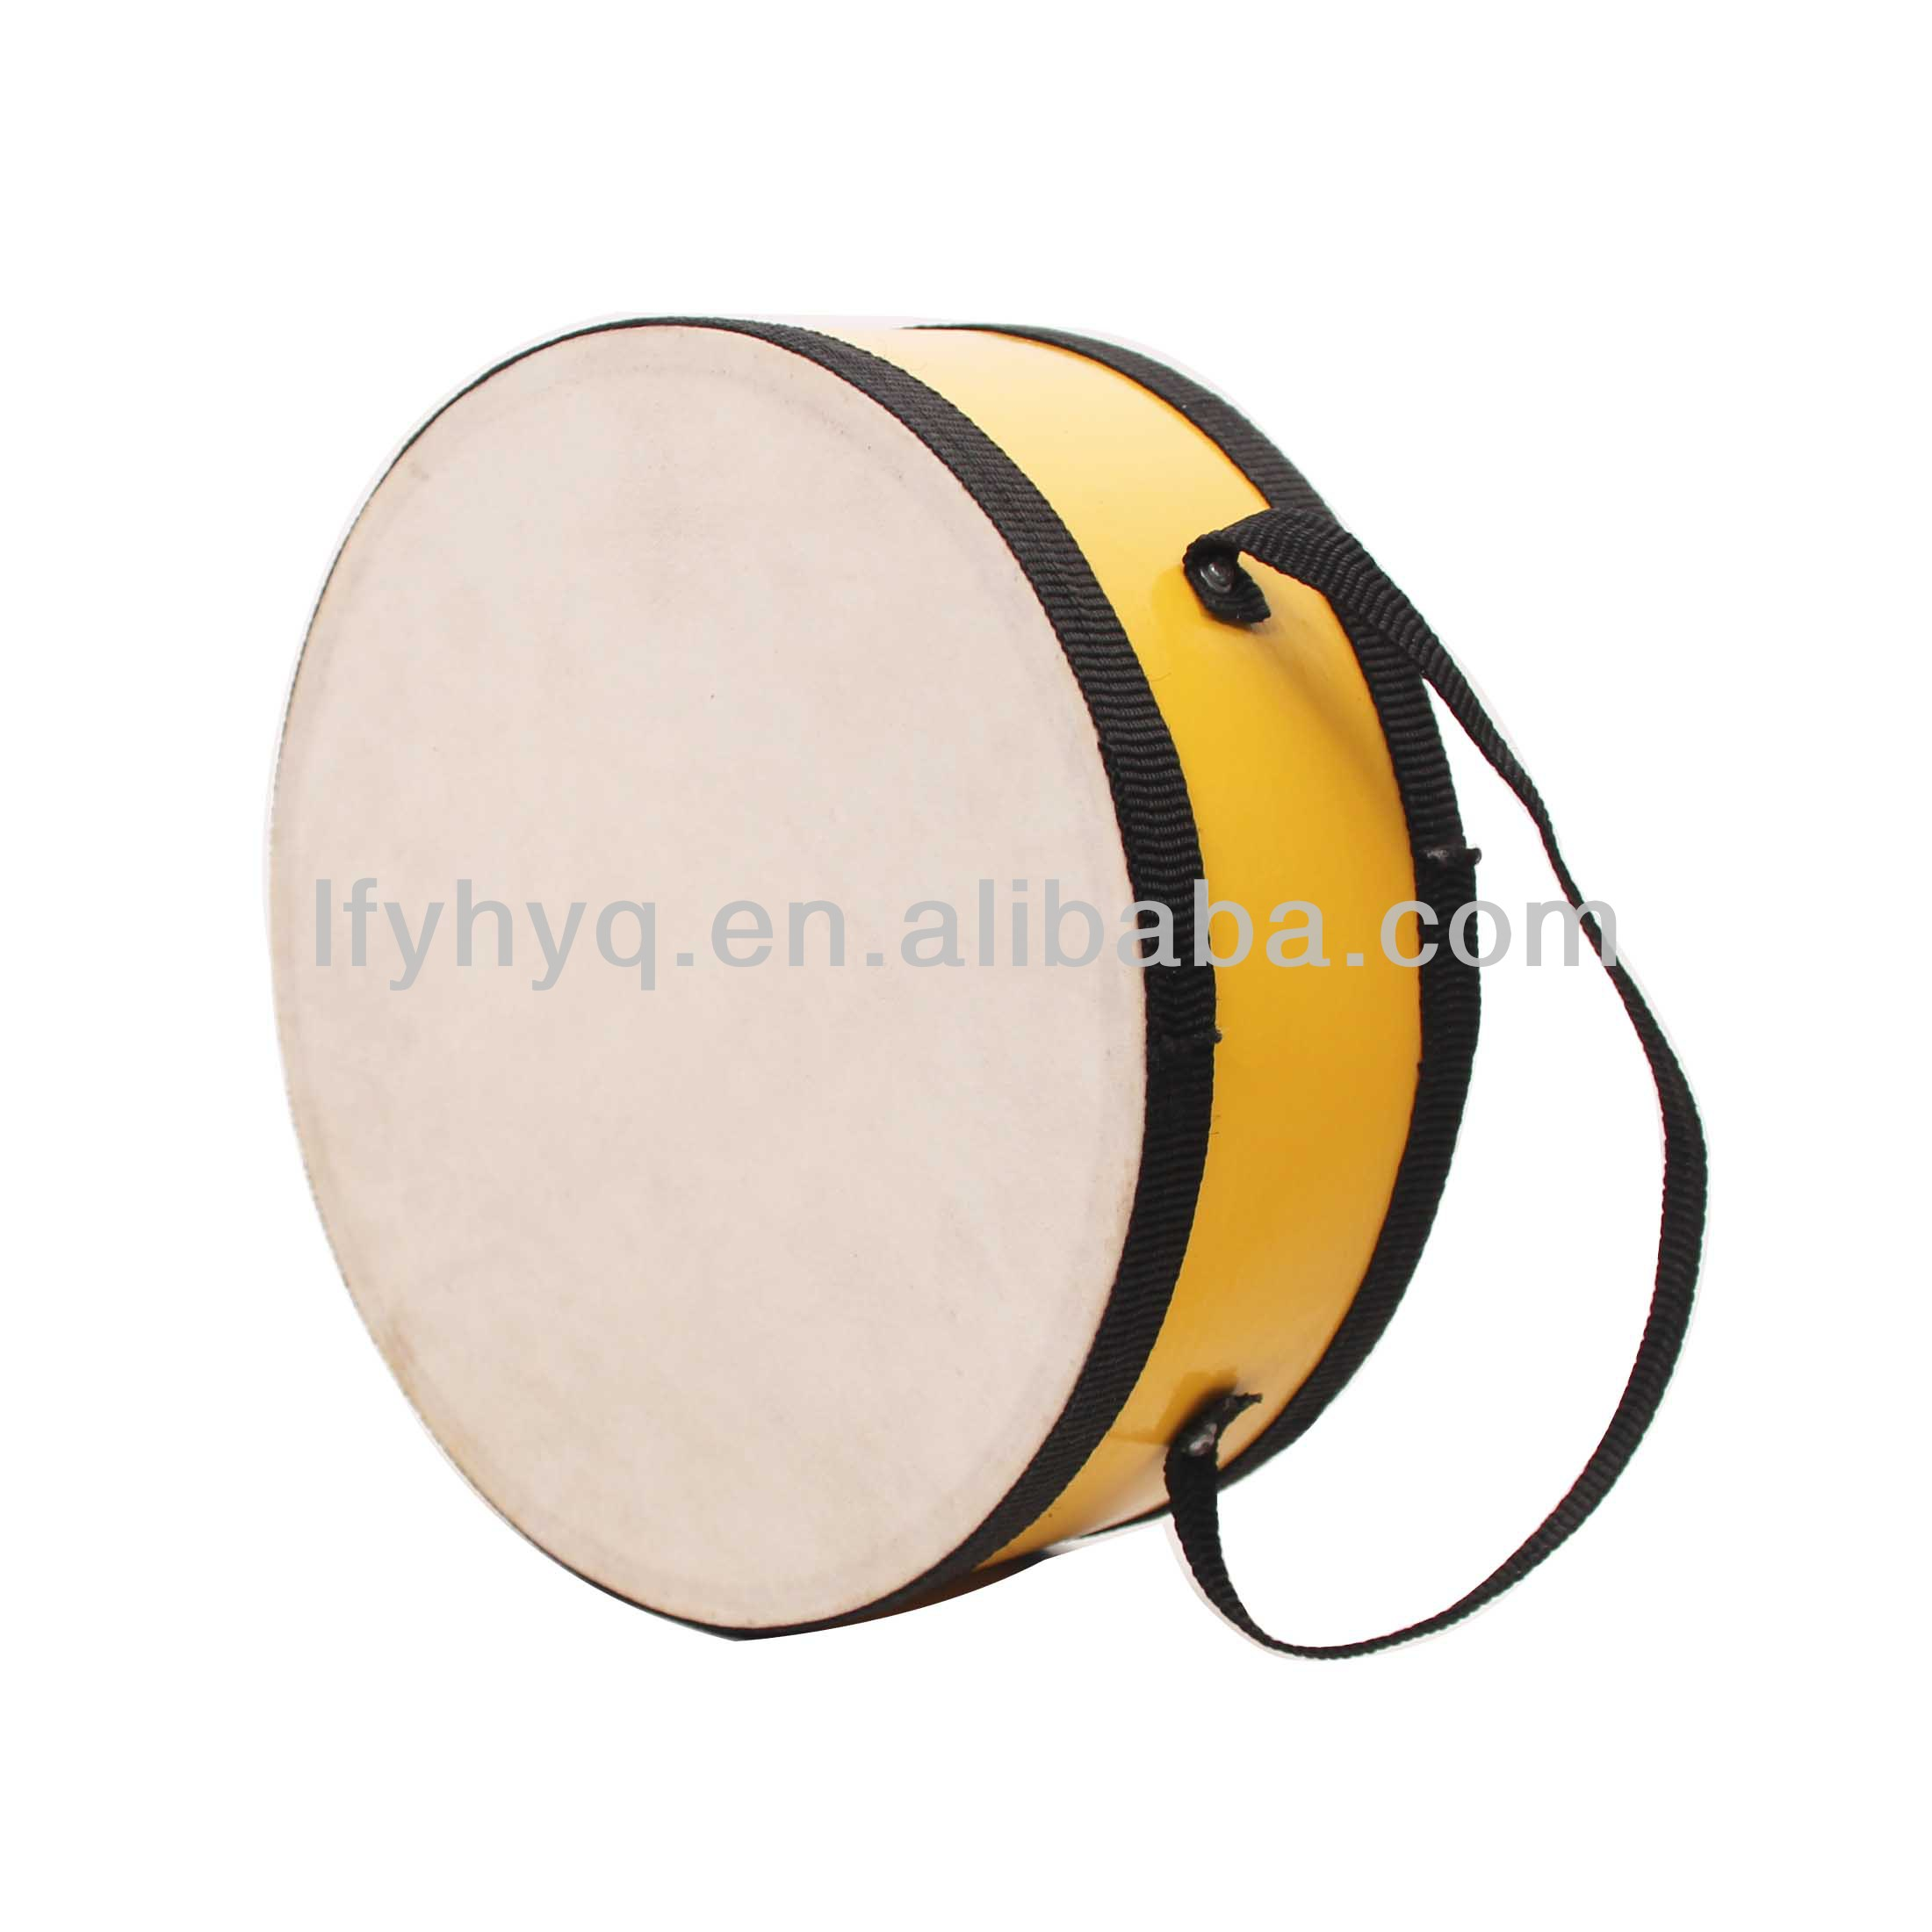 "8"" Indian Drum pOther Musical Instruments 8"" hand drum with stick"